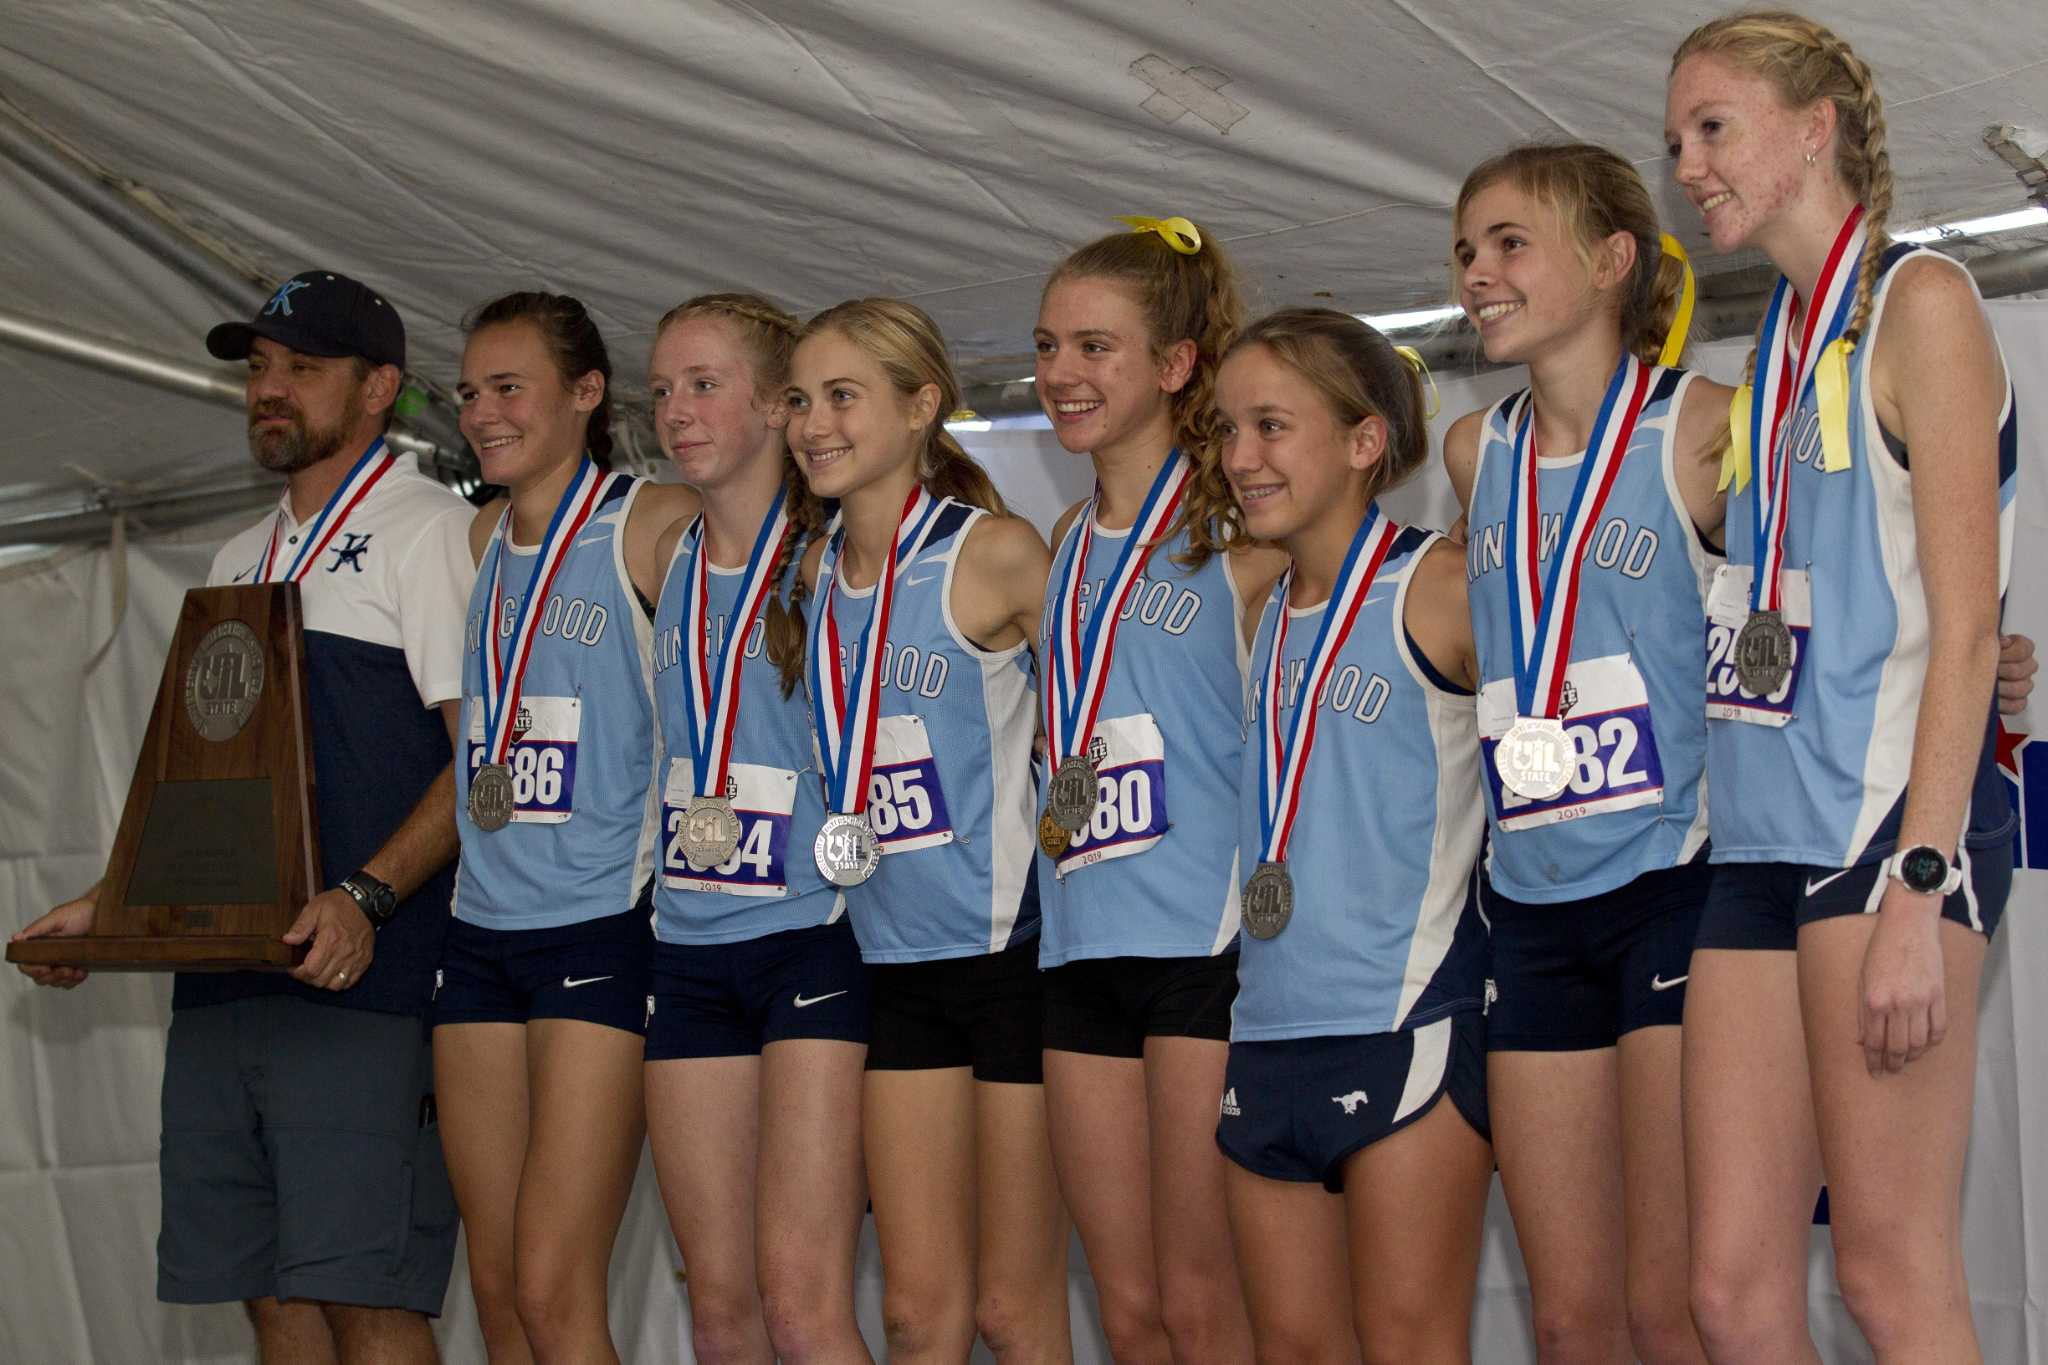 Cross Country: Kingwood girls finish second, Atascocita's Avery finishes third at state meet